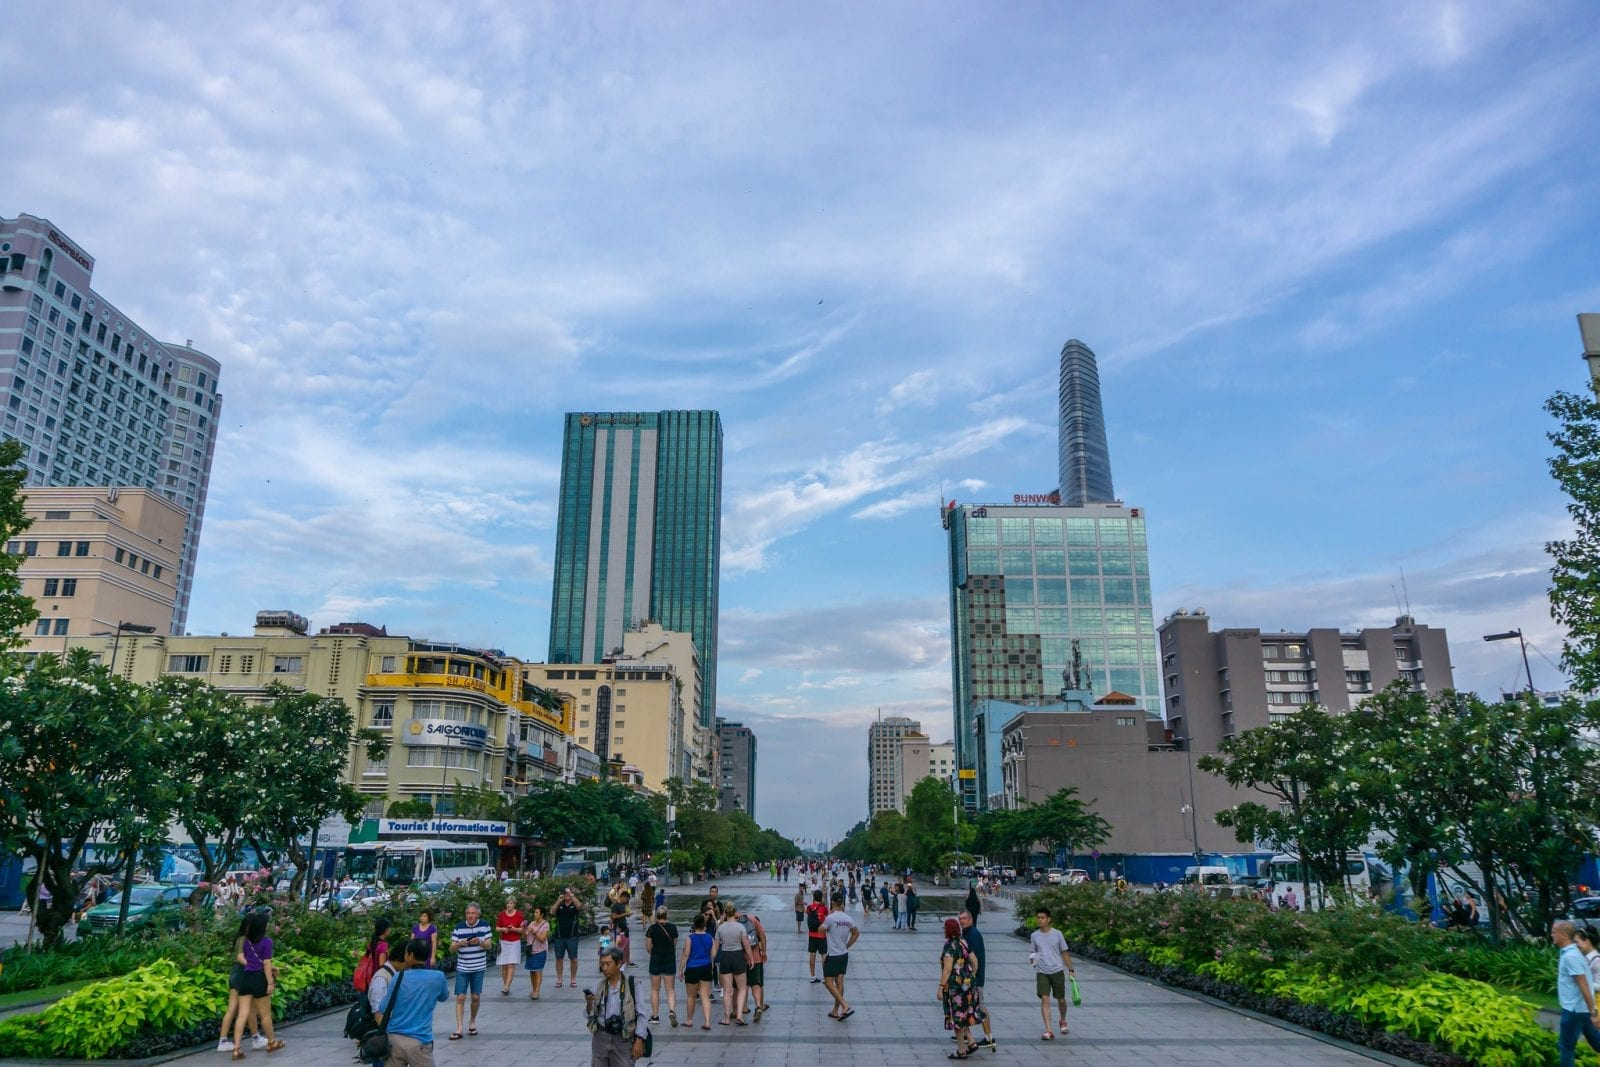 Image of the Nguyen Hue Walking Street in Ho Chi Minh City, Vietnam